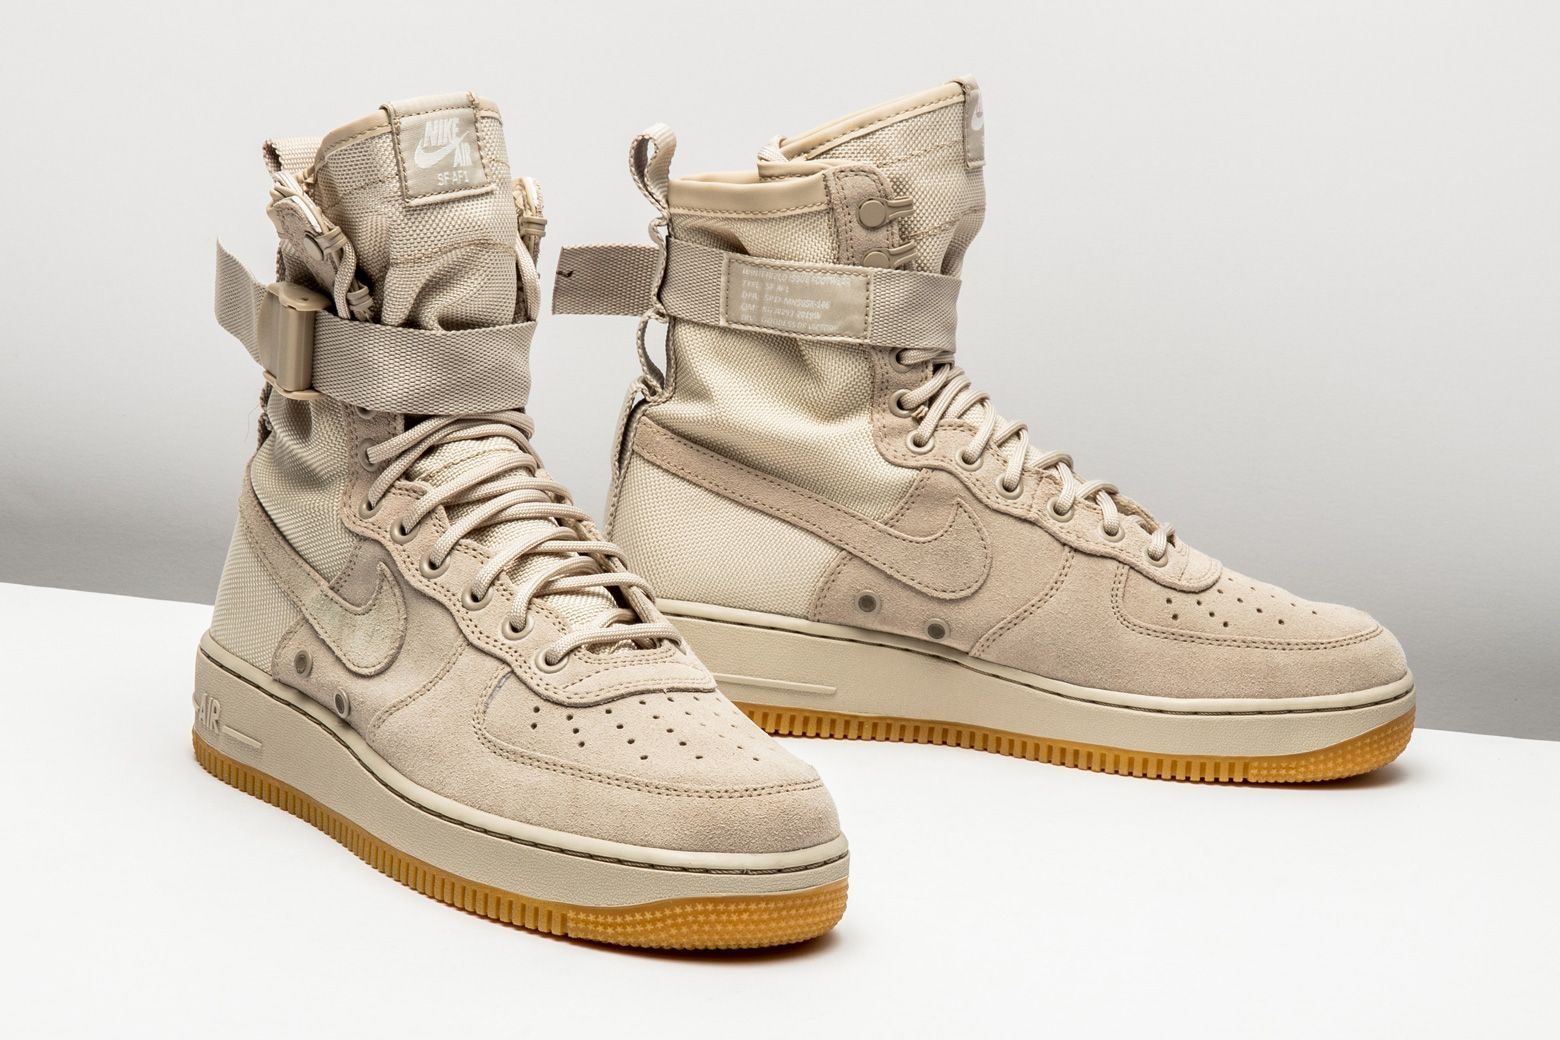 the best attitude 1aa32 0a4ee Crisp and clean, the military-inspired Nike SF-Air Force 1 returns in this  String colorway. www.stadiumgoods....  Nike